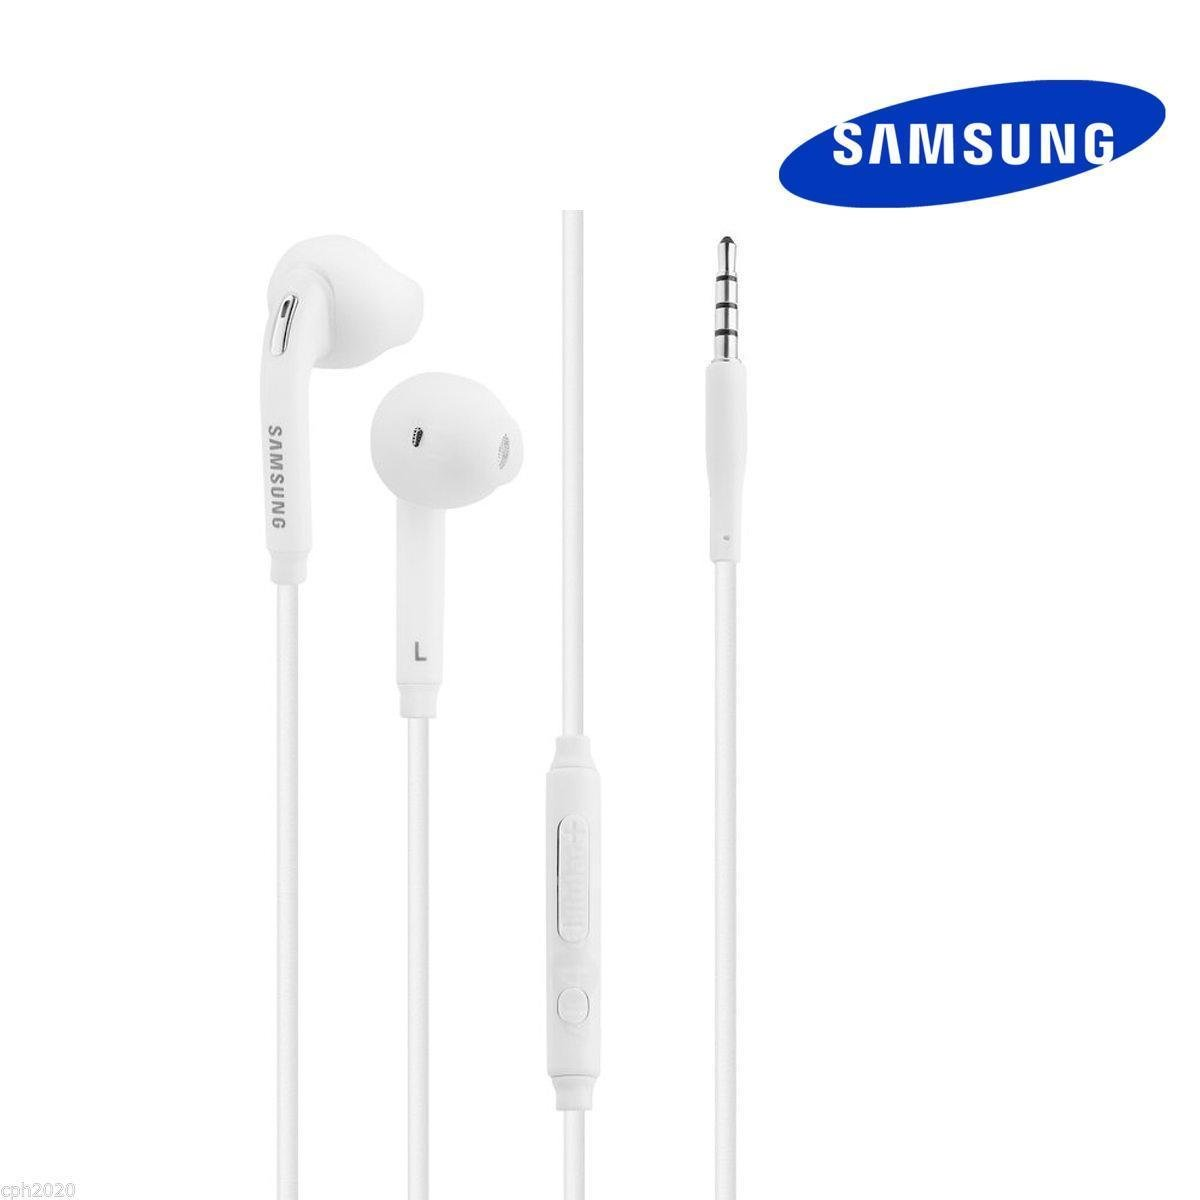 Samsung Wired in-Ear Earbuds Headset with Built-in Microphone for S7 Edge S6 Note (Non-Retail Packaging)